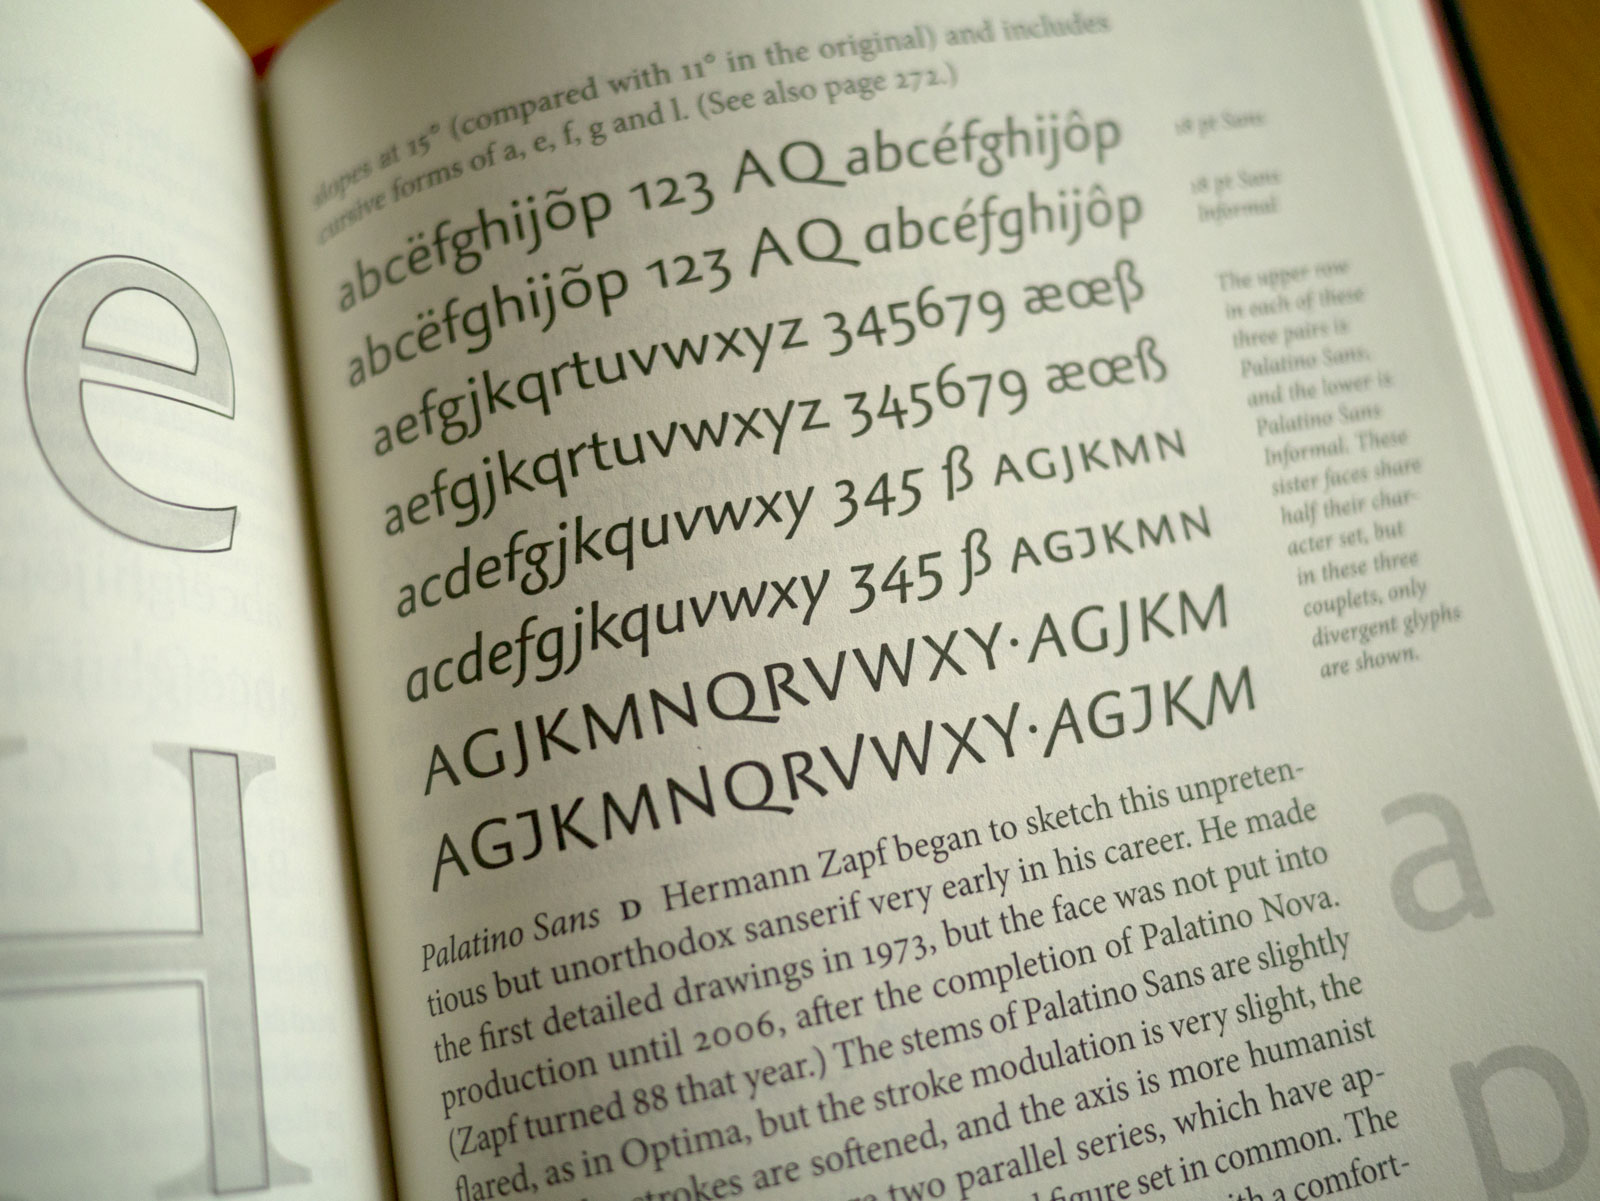 The Elements of Typographic Style – Robert Bringhurst